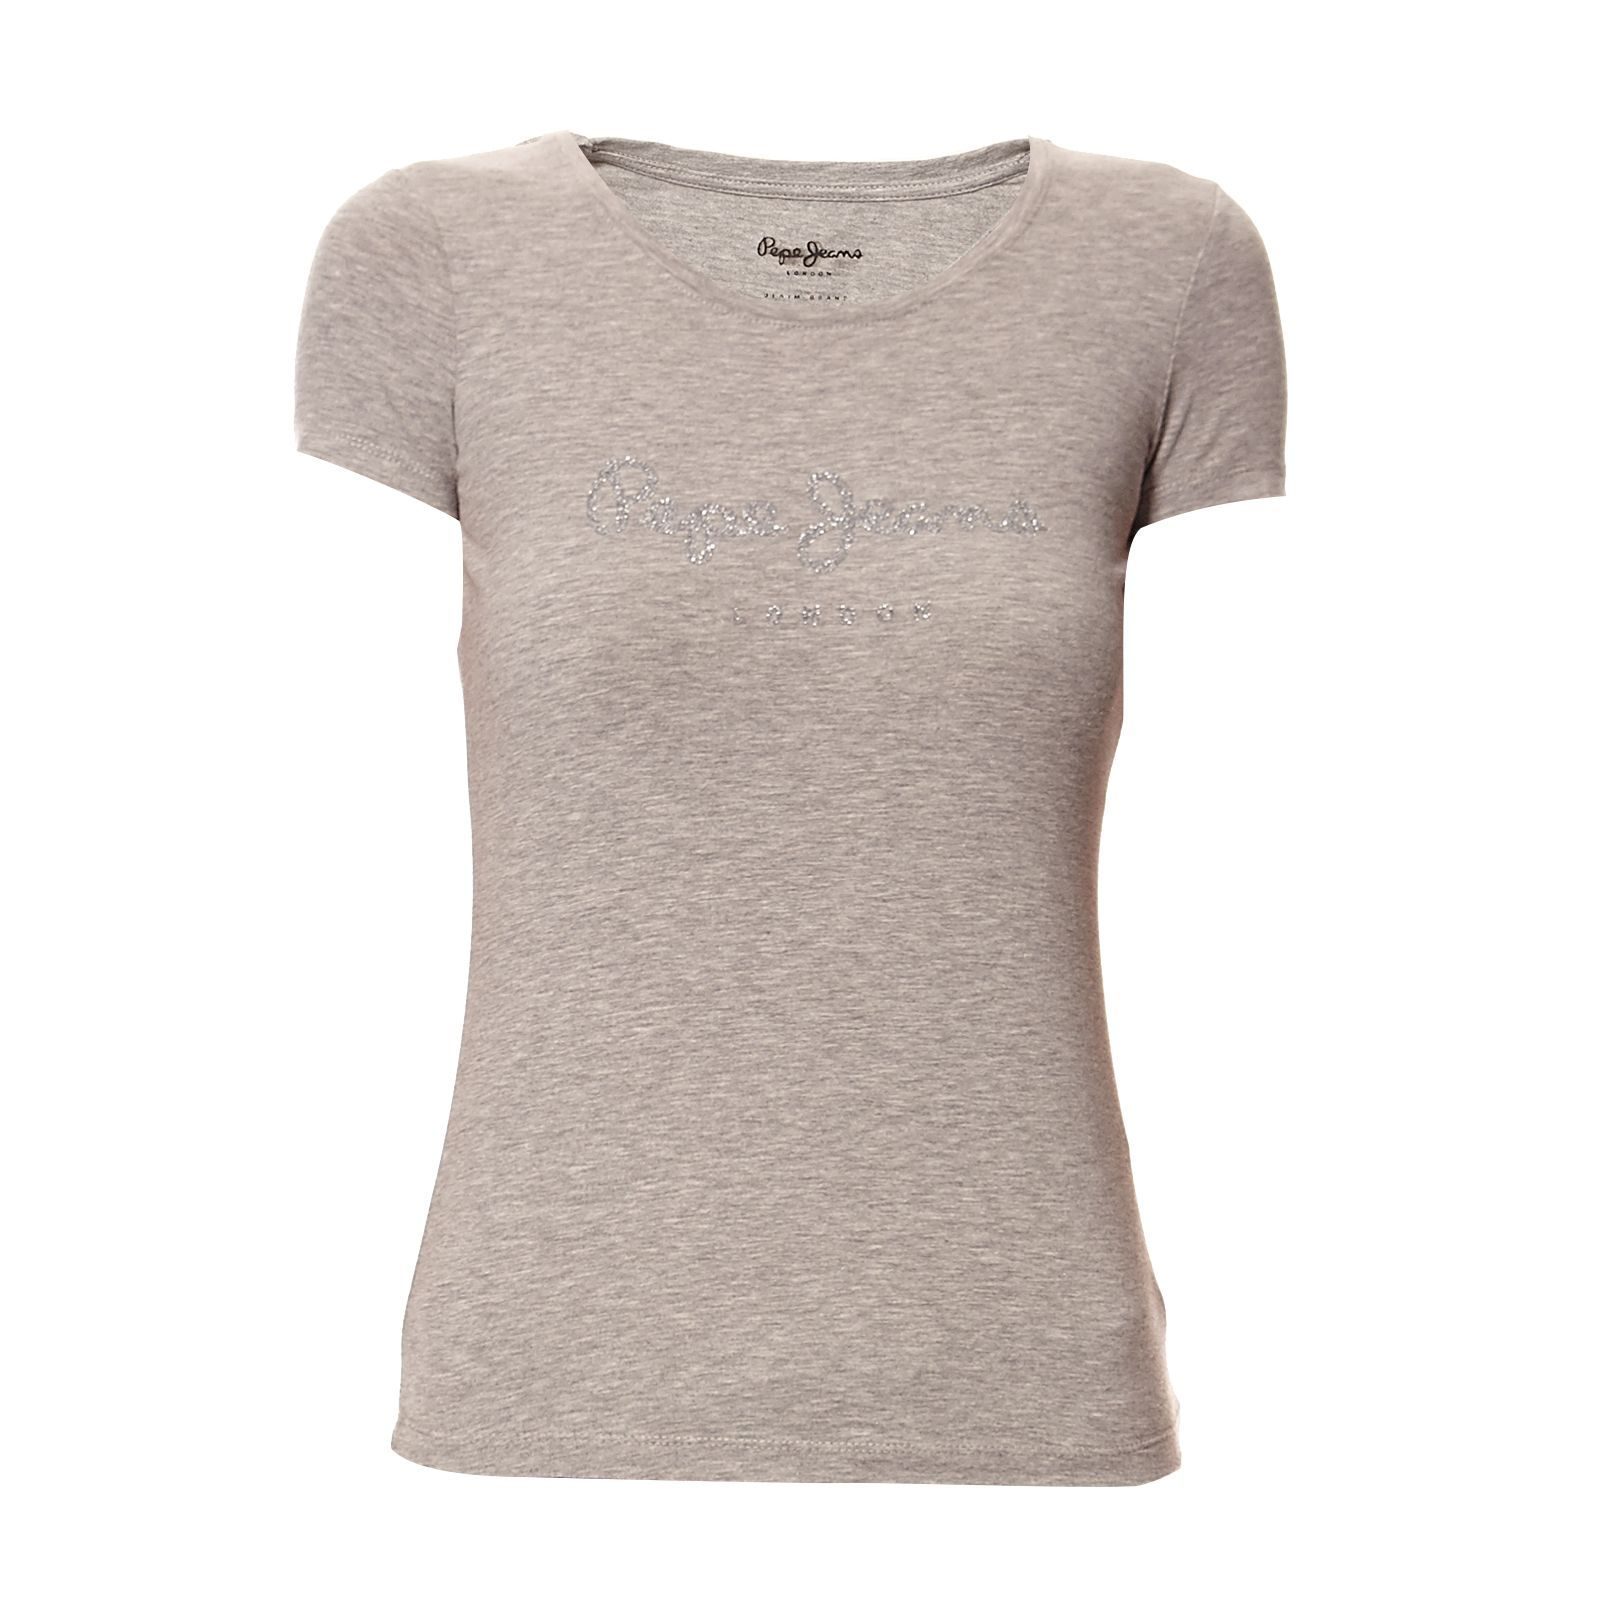 Pepe Jeans London Emily - T-shirt - gris chine